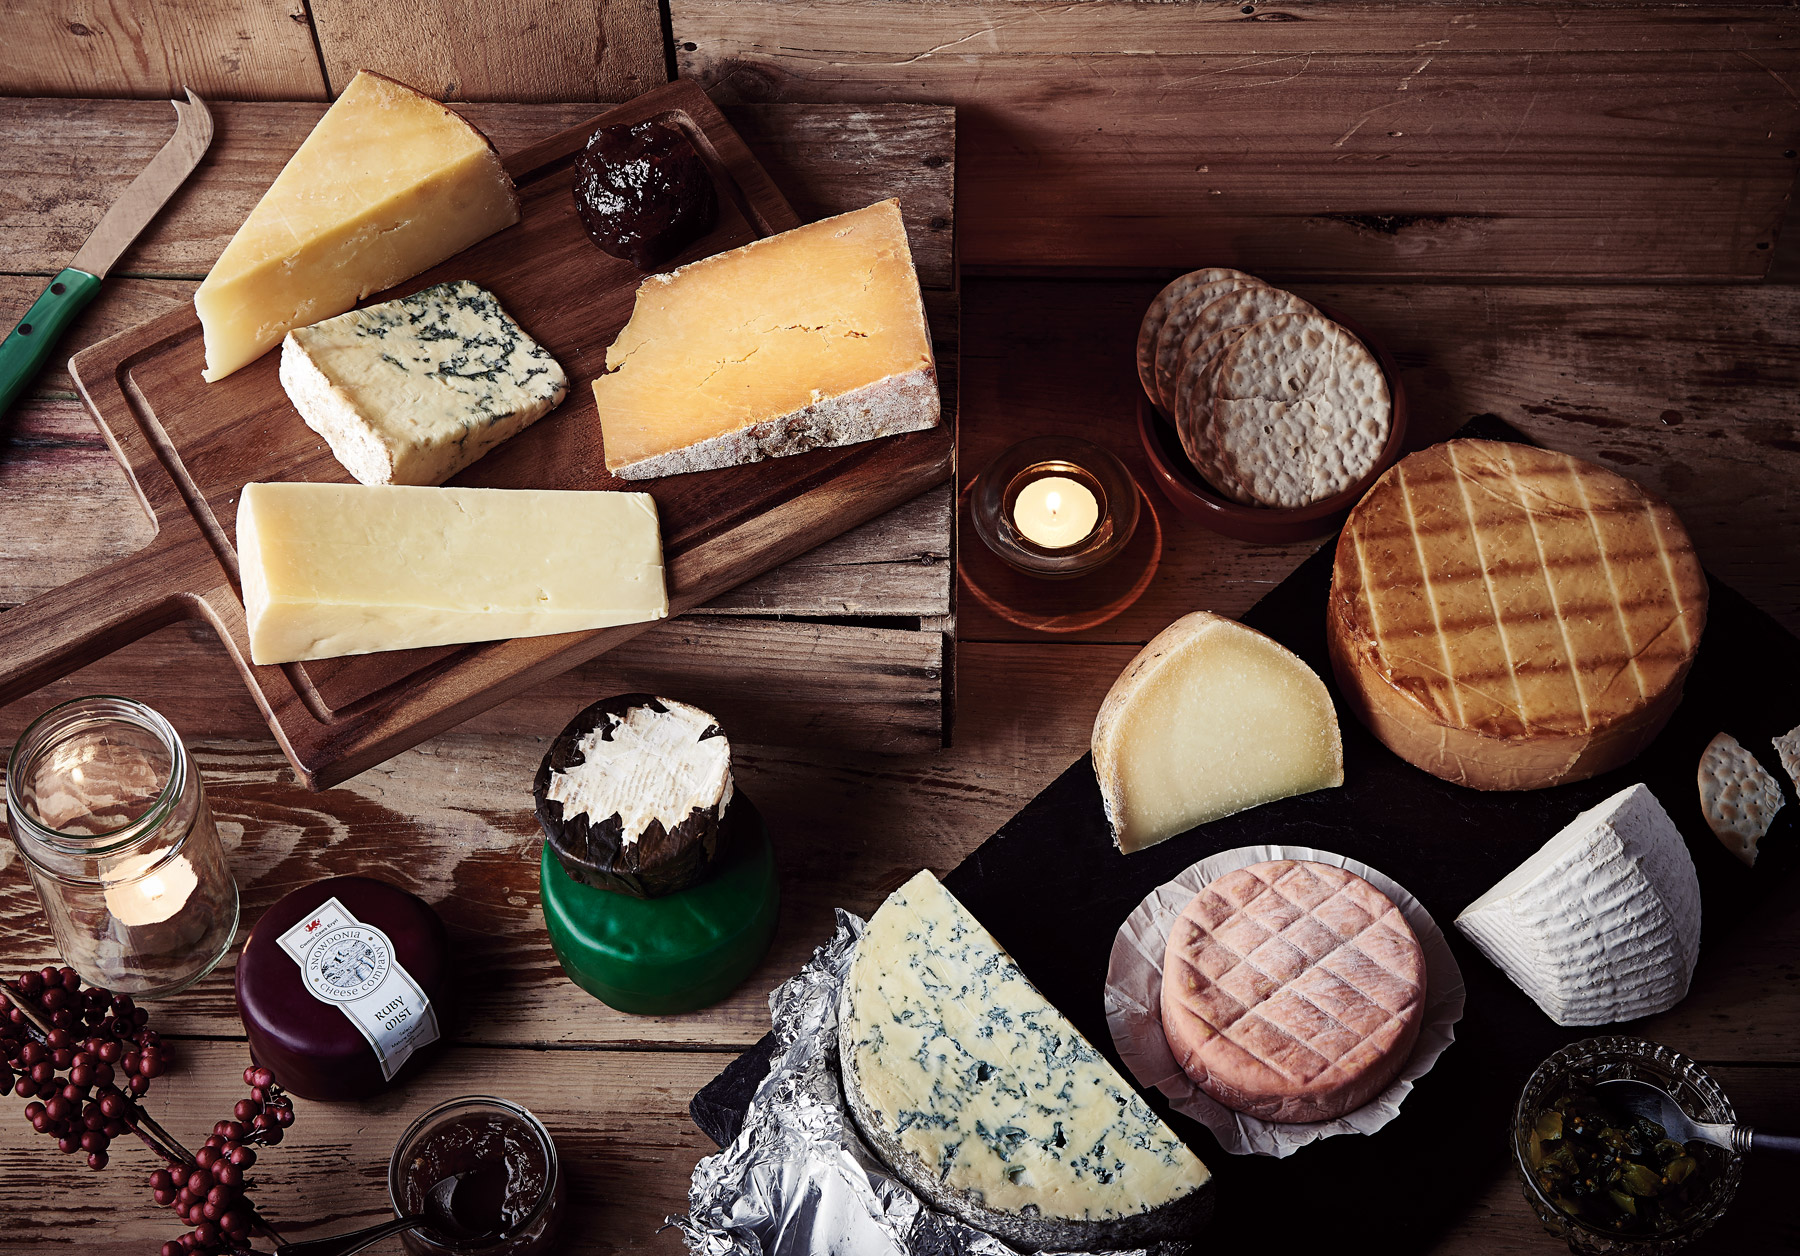 Cheese platter on a wooden background